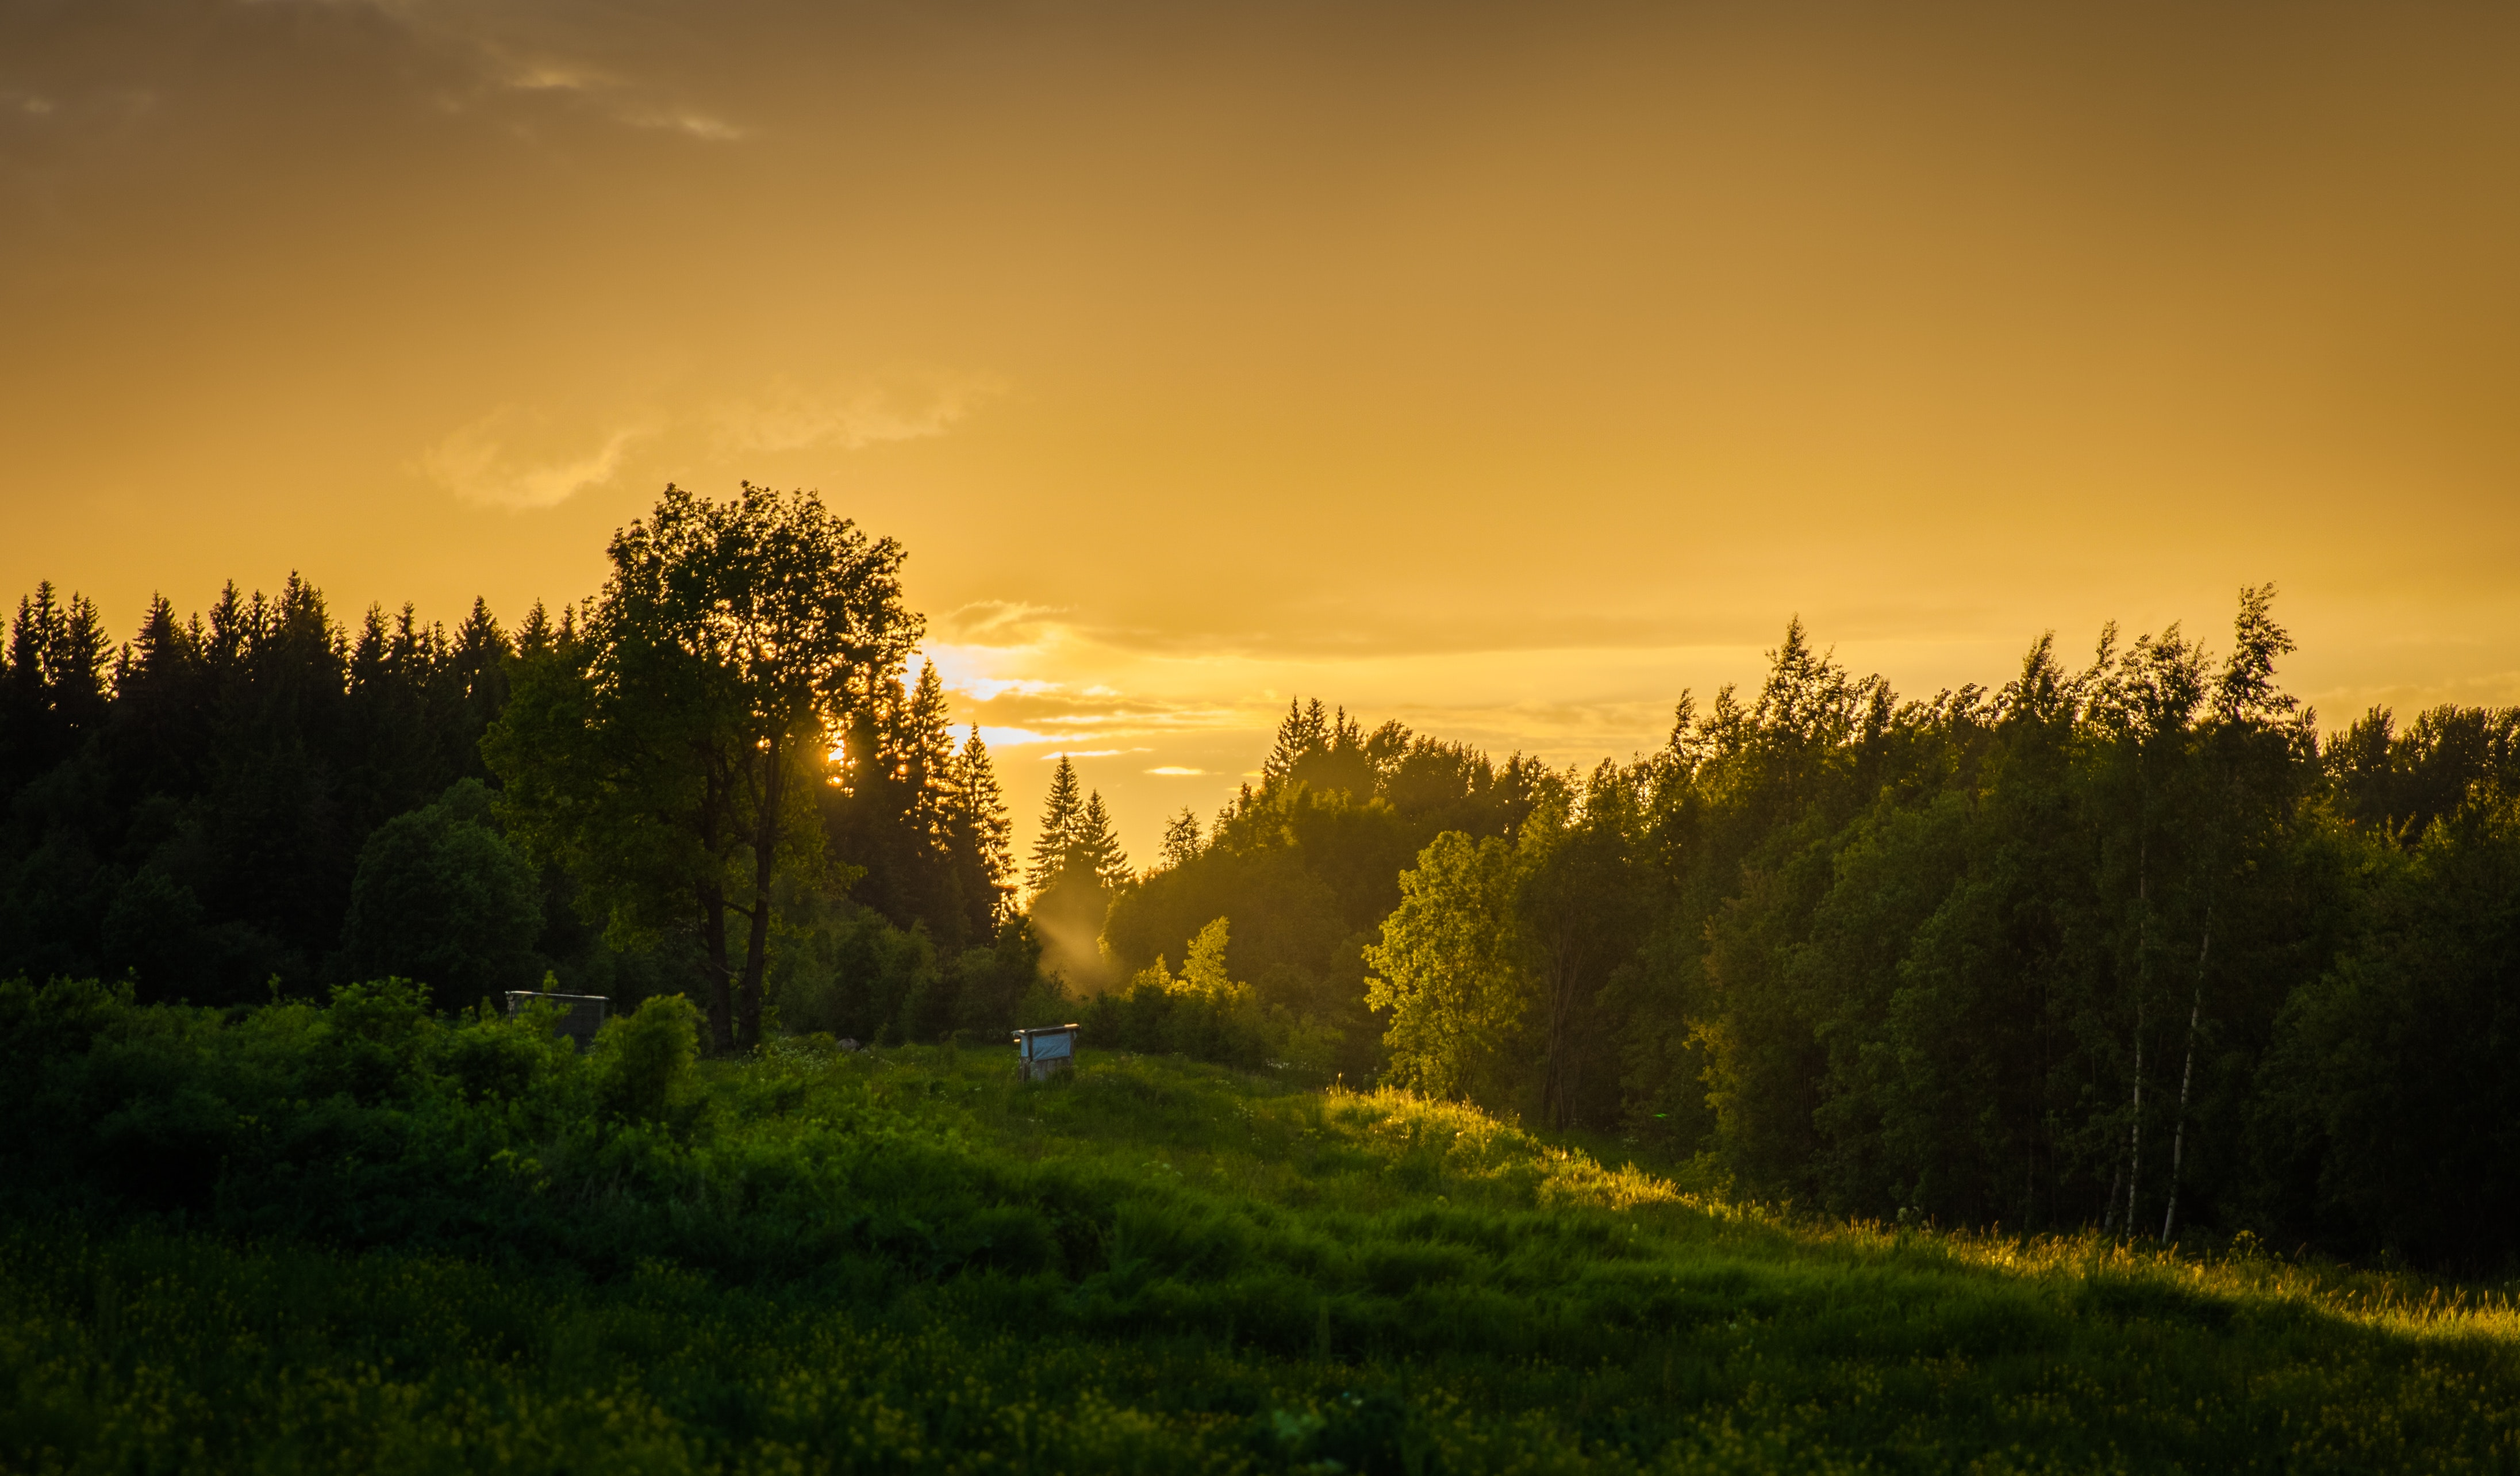 Forest during sunset photo